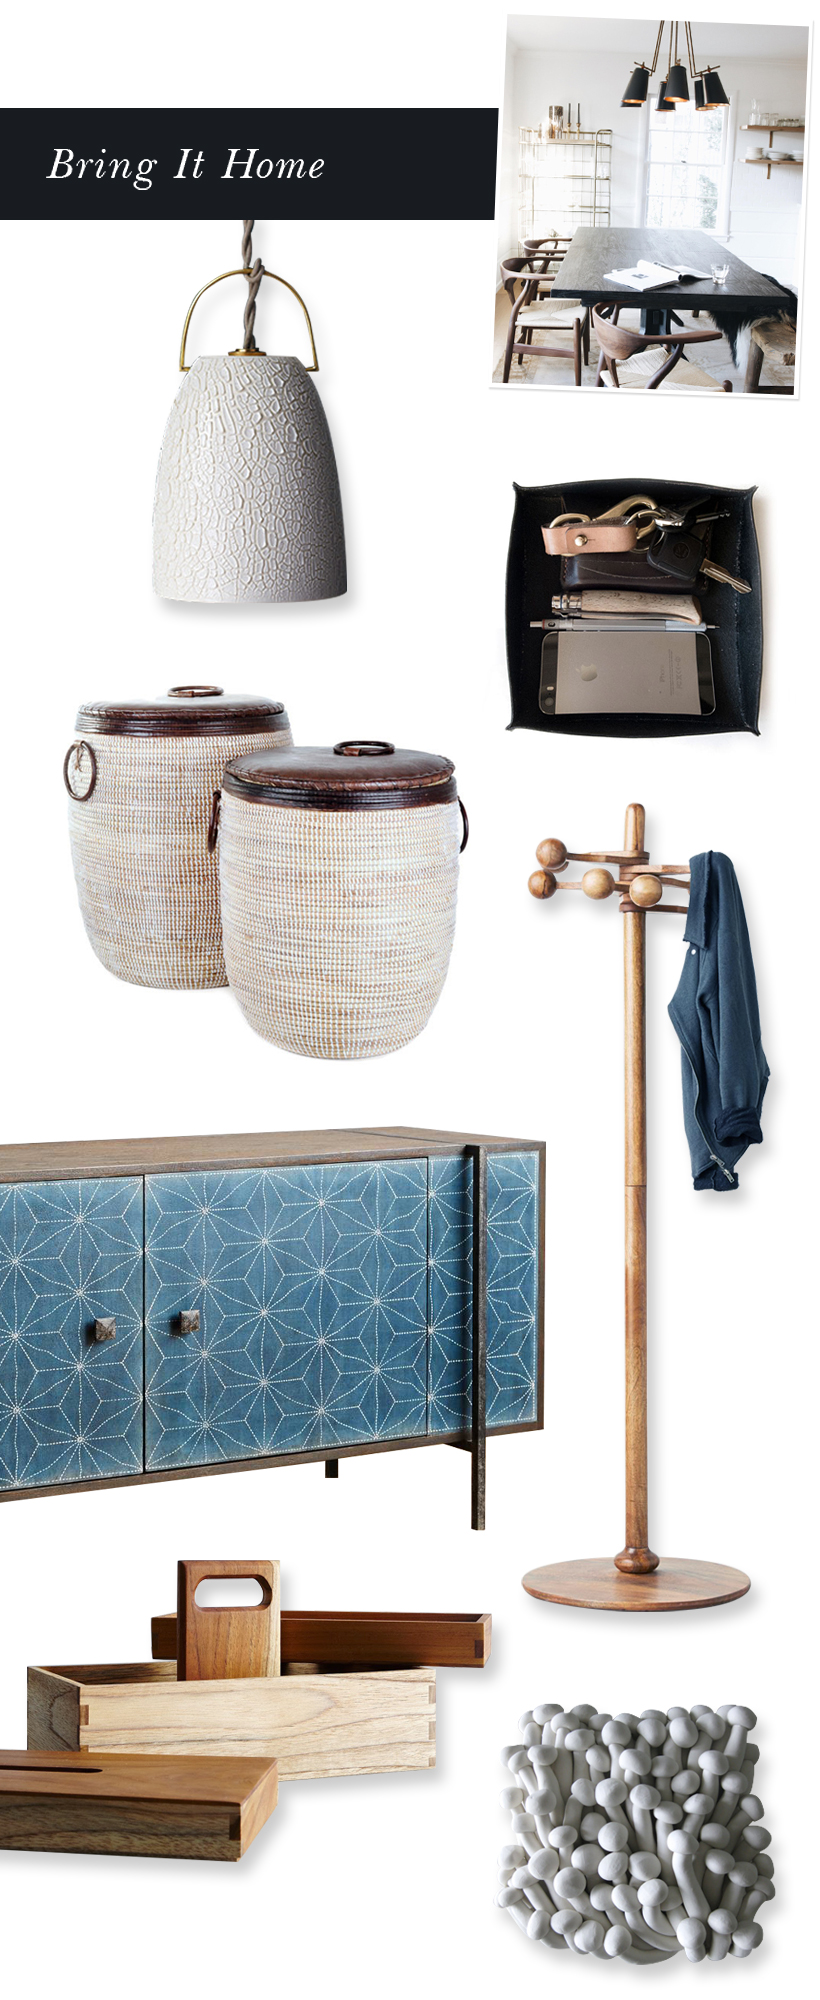 Bring It Home Habits For An Uncluttered Home